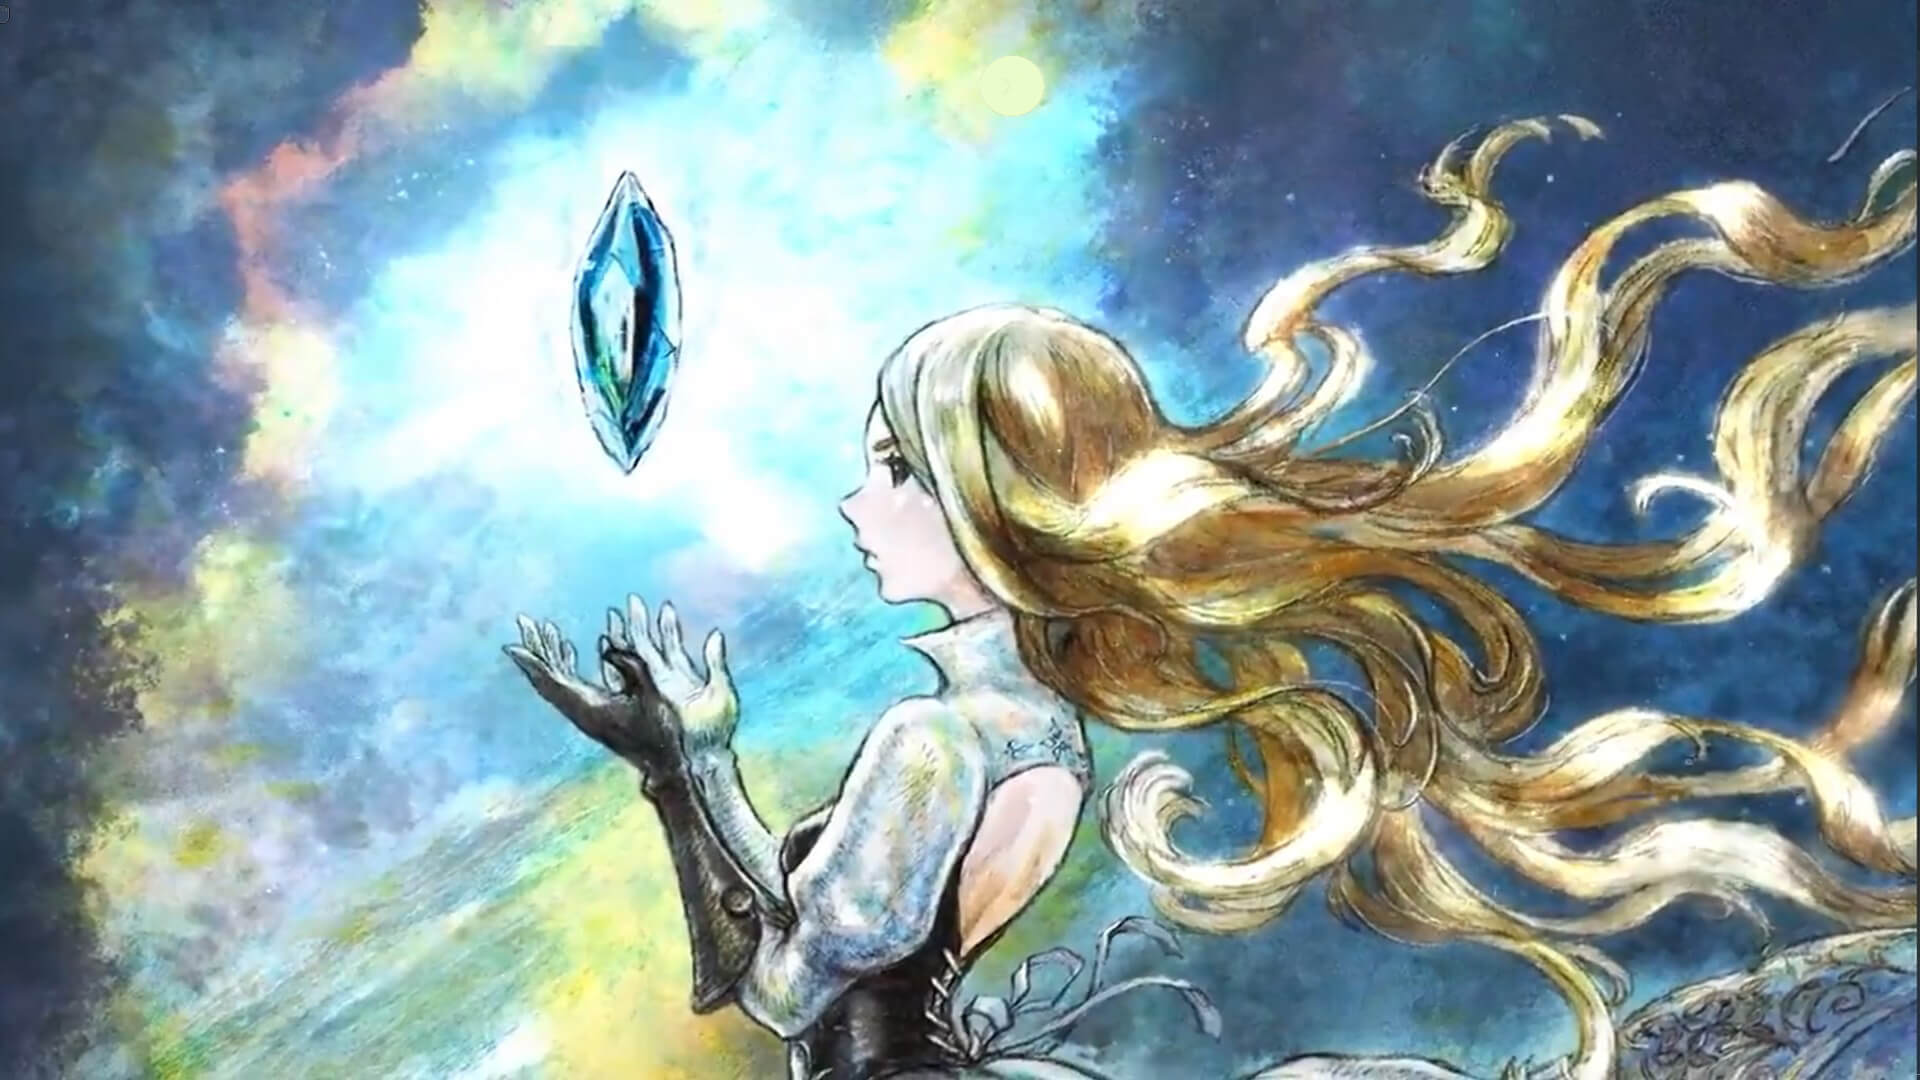 Third Bravely Game Coming to Switch: Bravely Default 2